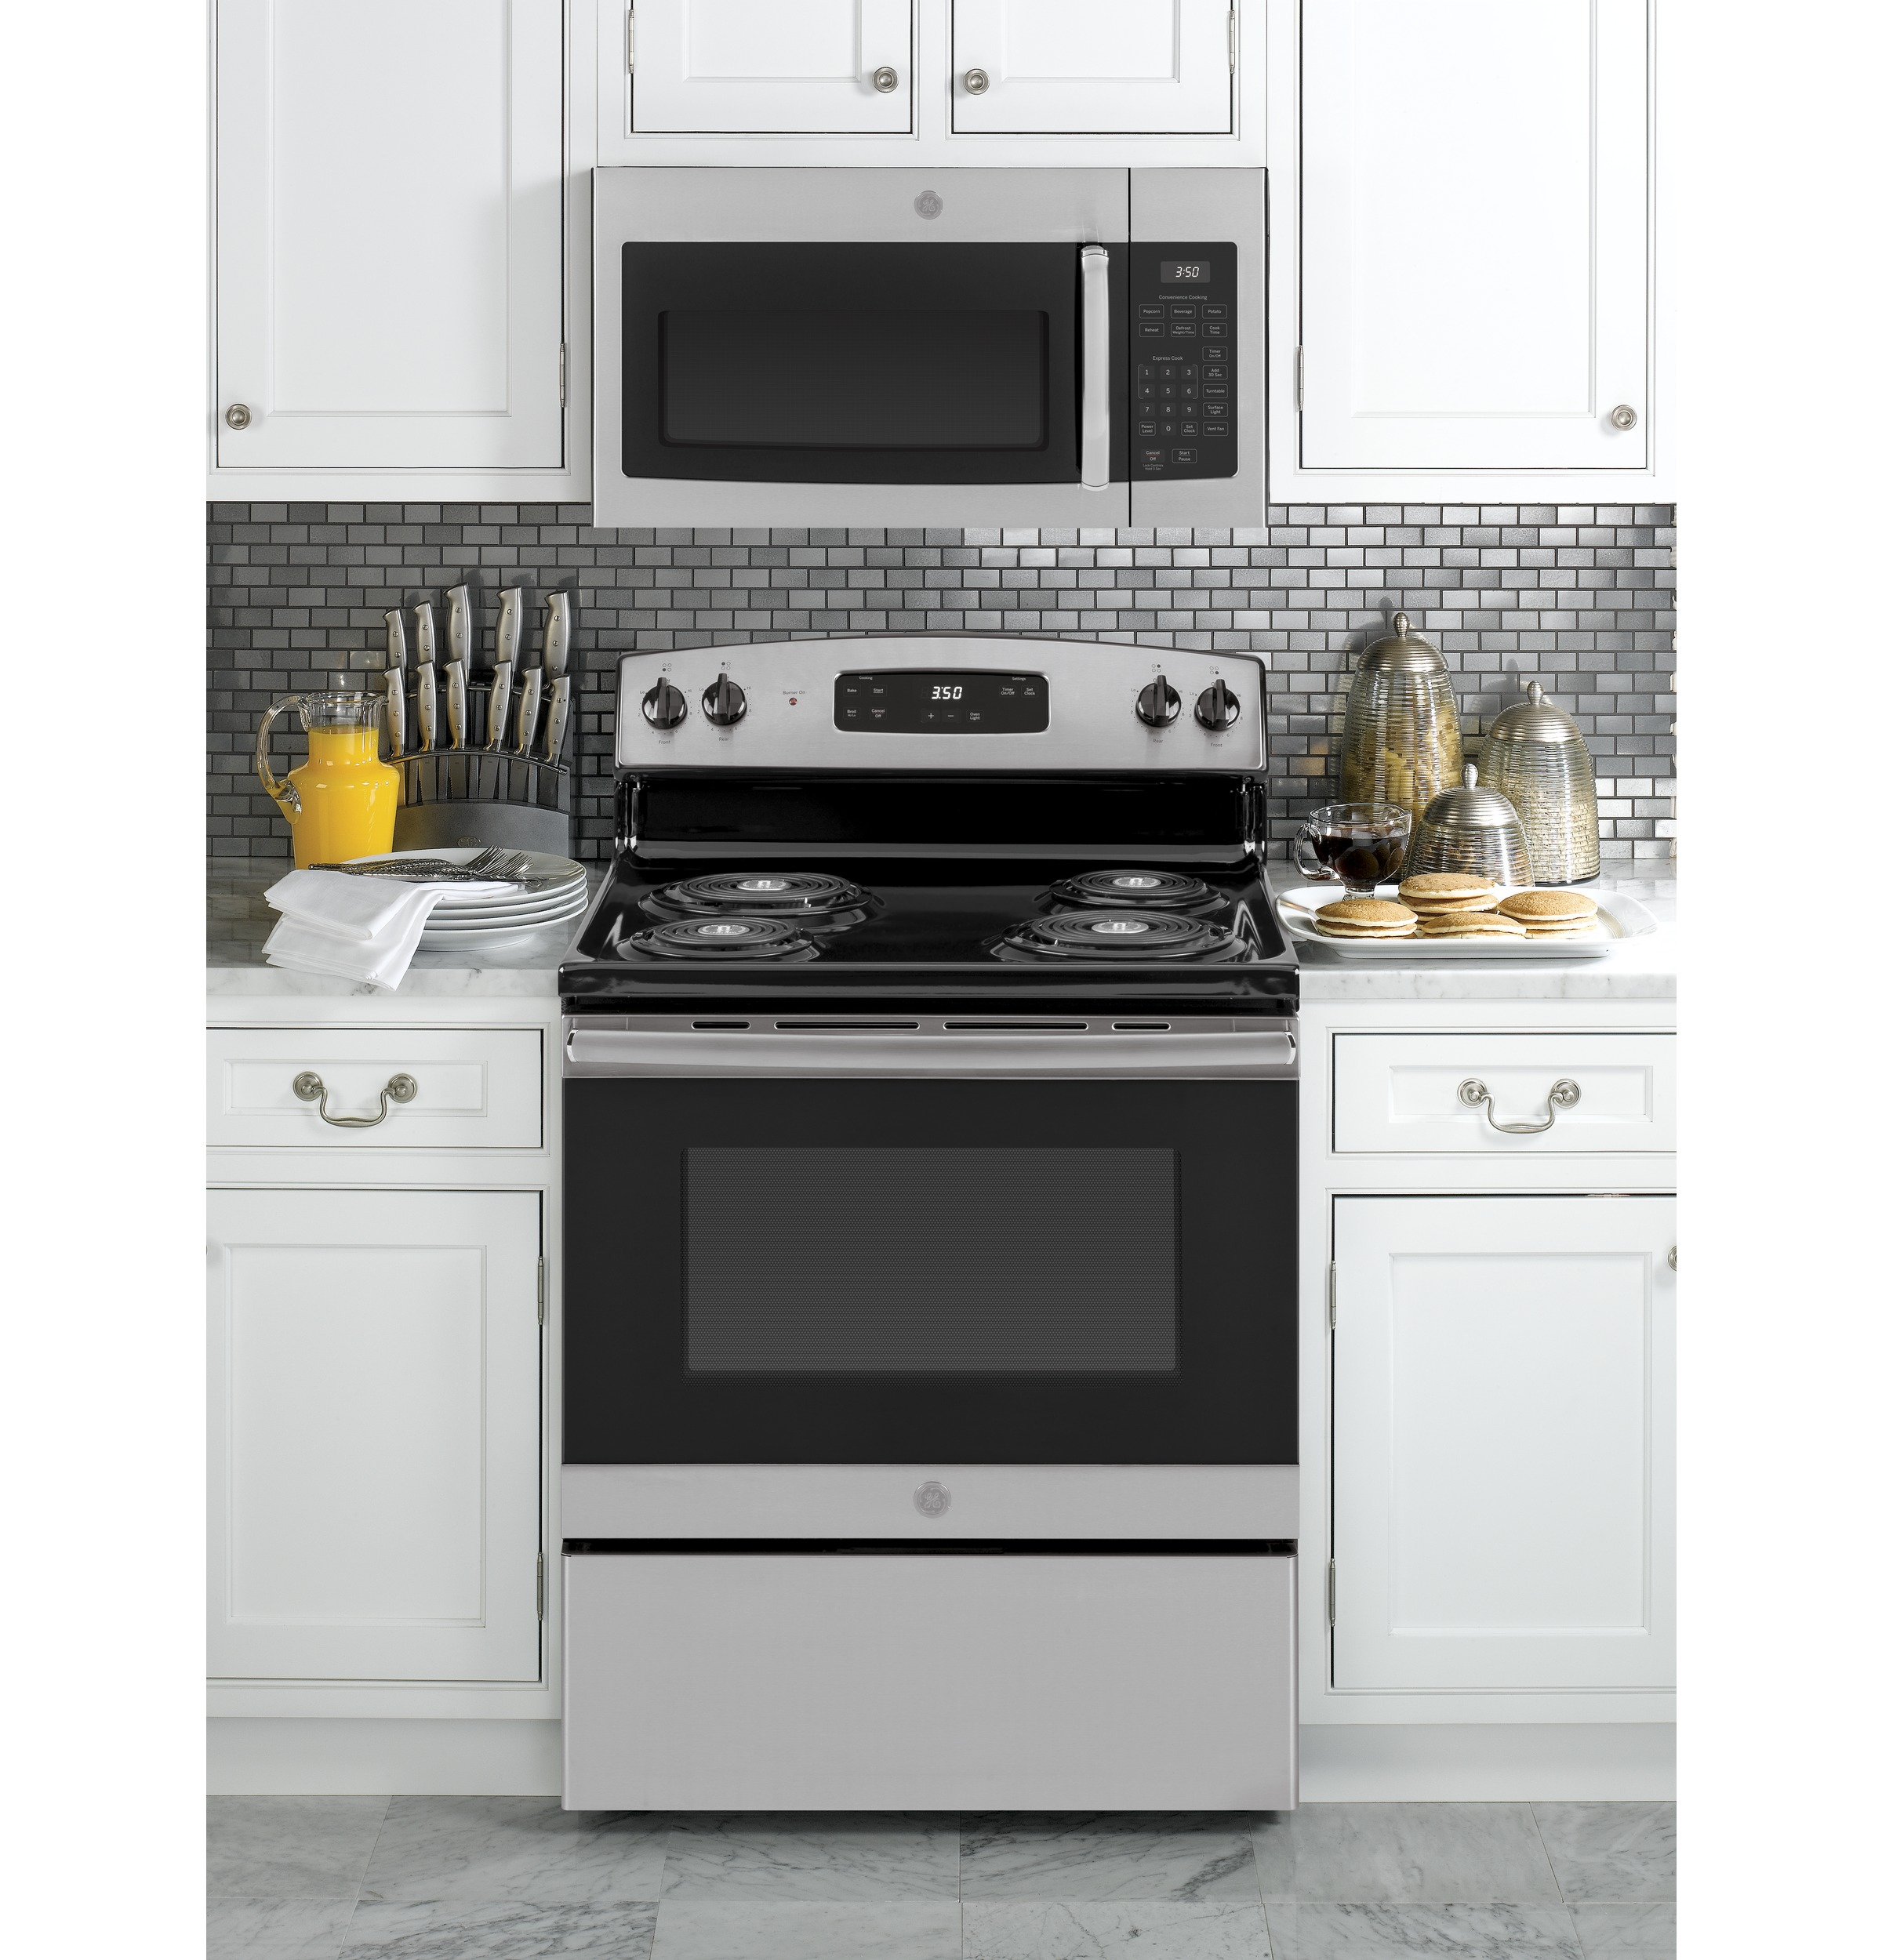 12 inch over the range microwave - Product Image Product Image Product Image